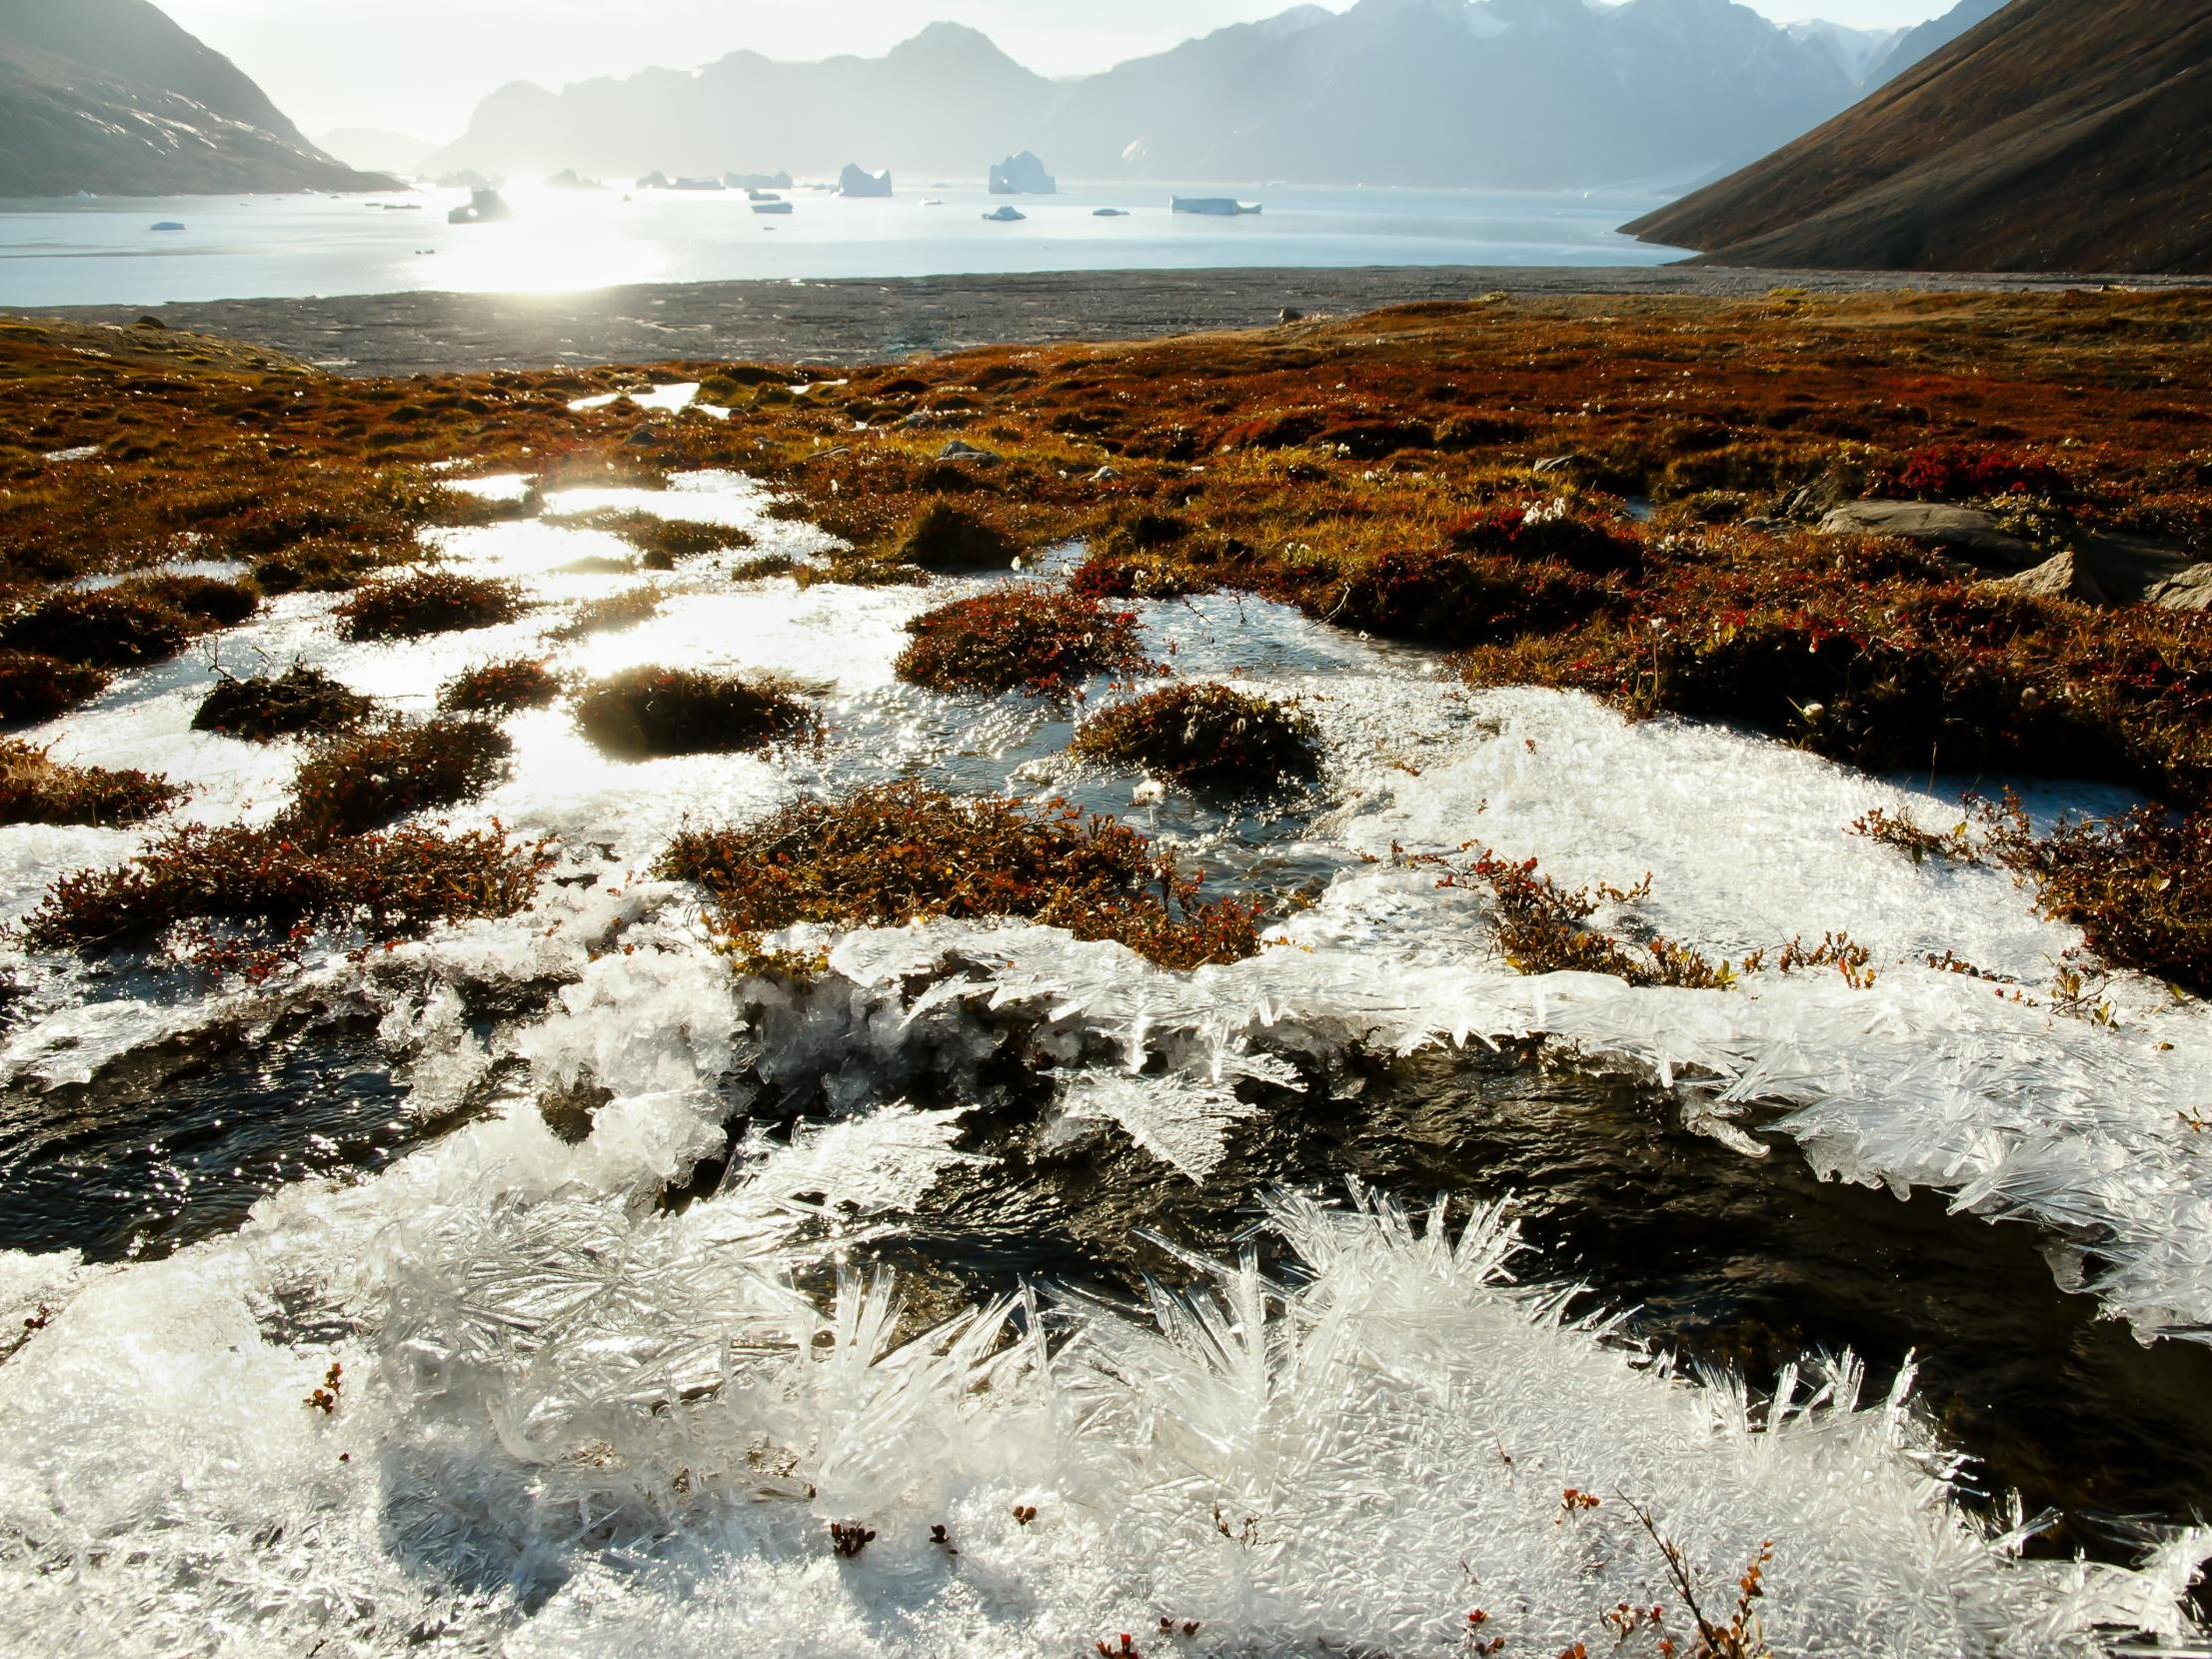 Thawing permafrost turns Arctic from carbon sink into carbon emitter, study finds